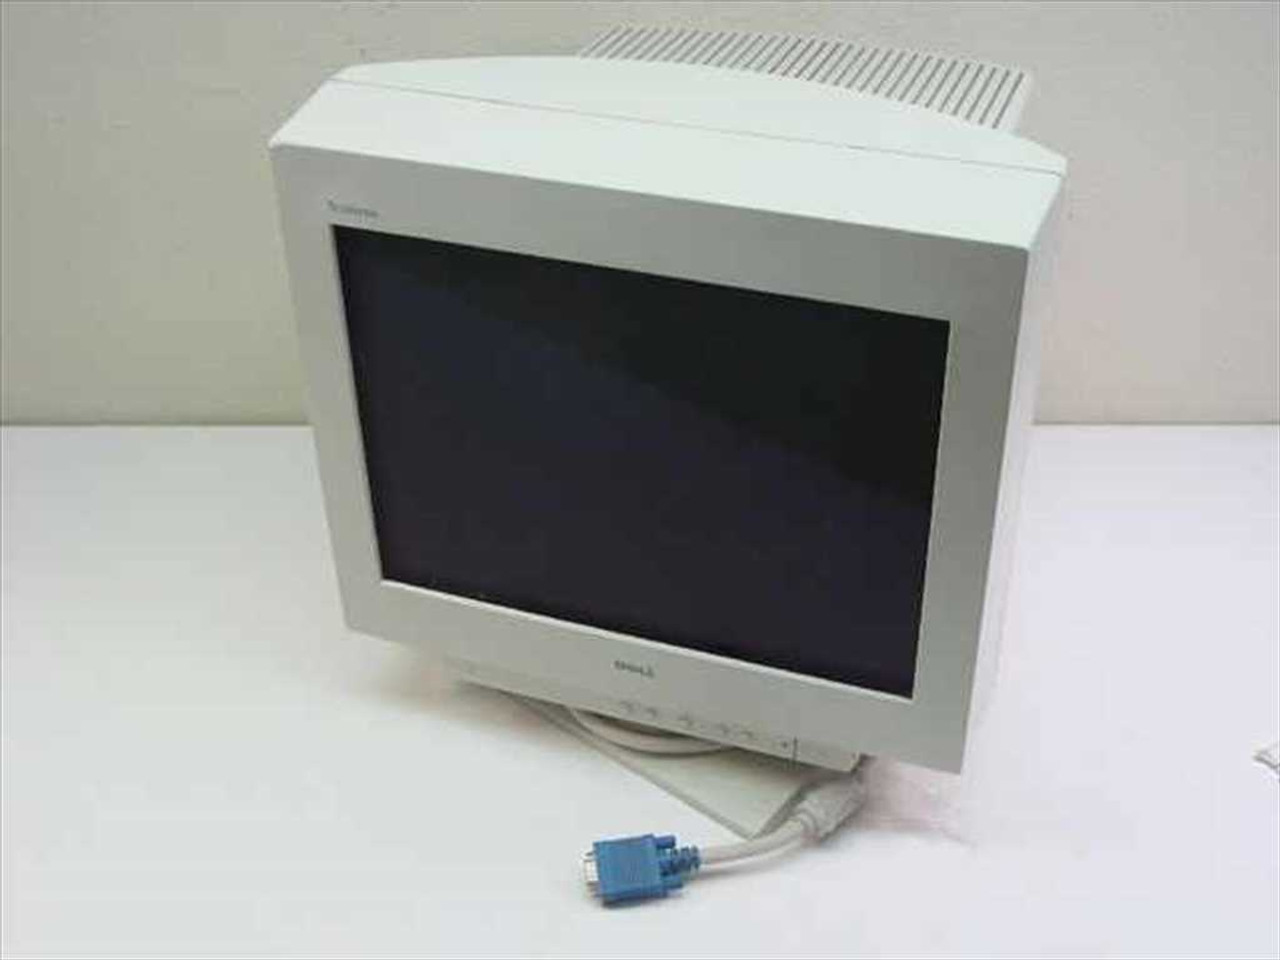 Dell p780 17 flat screen monitor ultra scan white recycledgoods dell p780 17 flat screen monitor ultra scan reheart Gallery